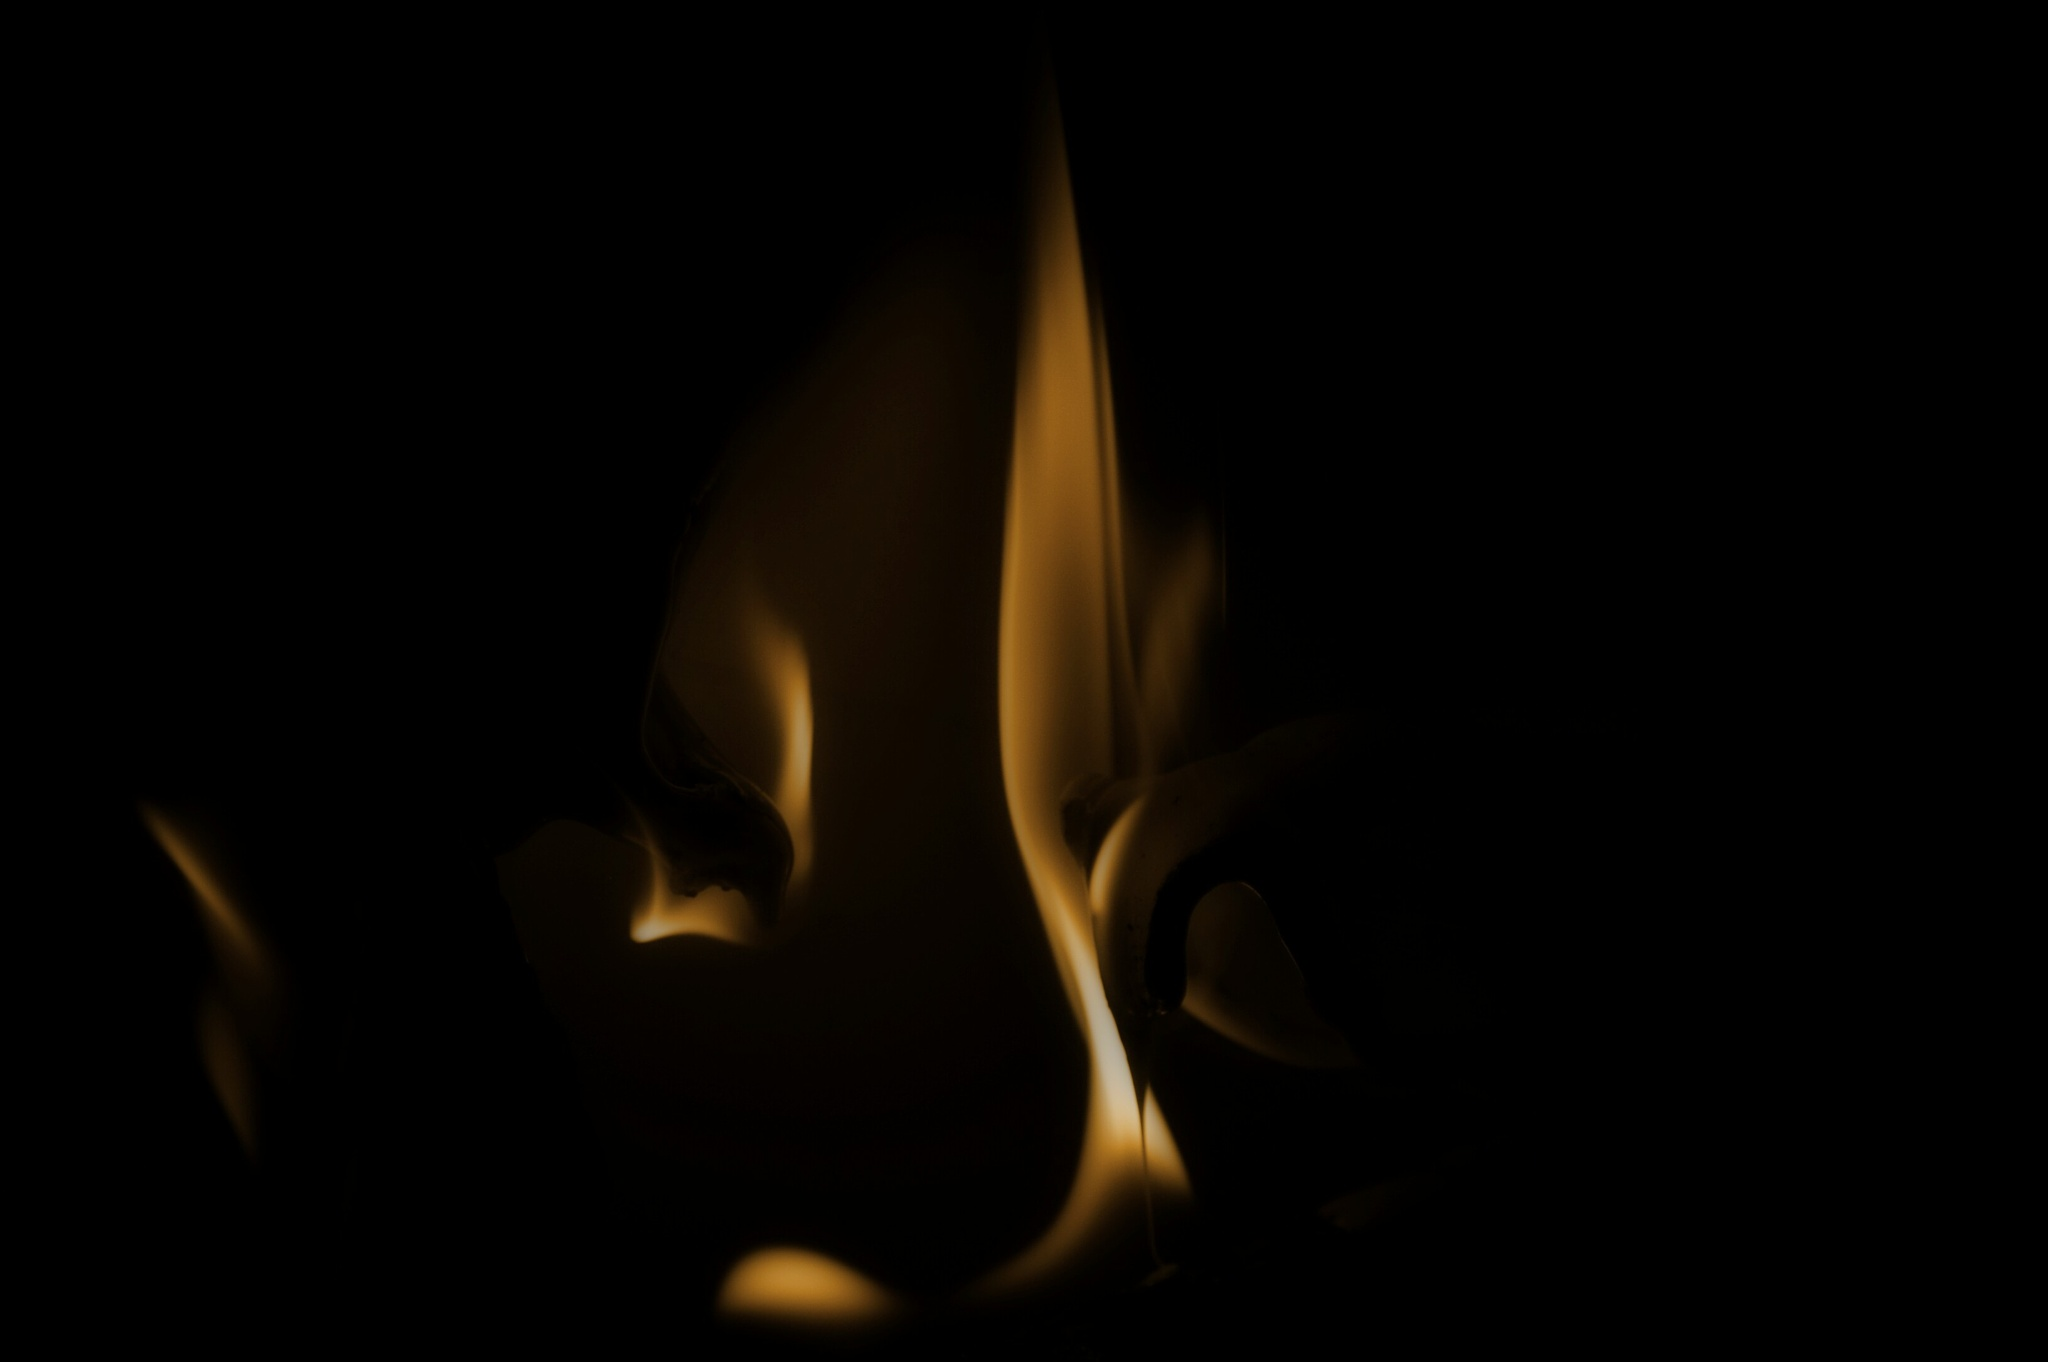 Late night flame by Diana Orey